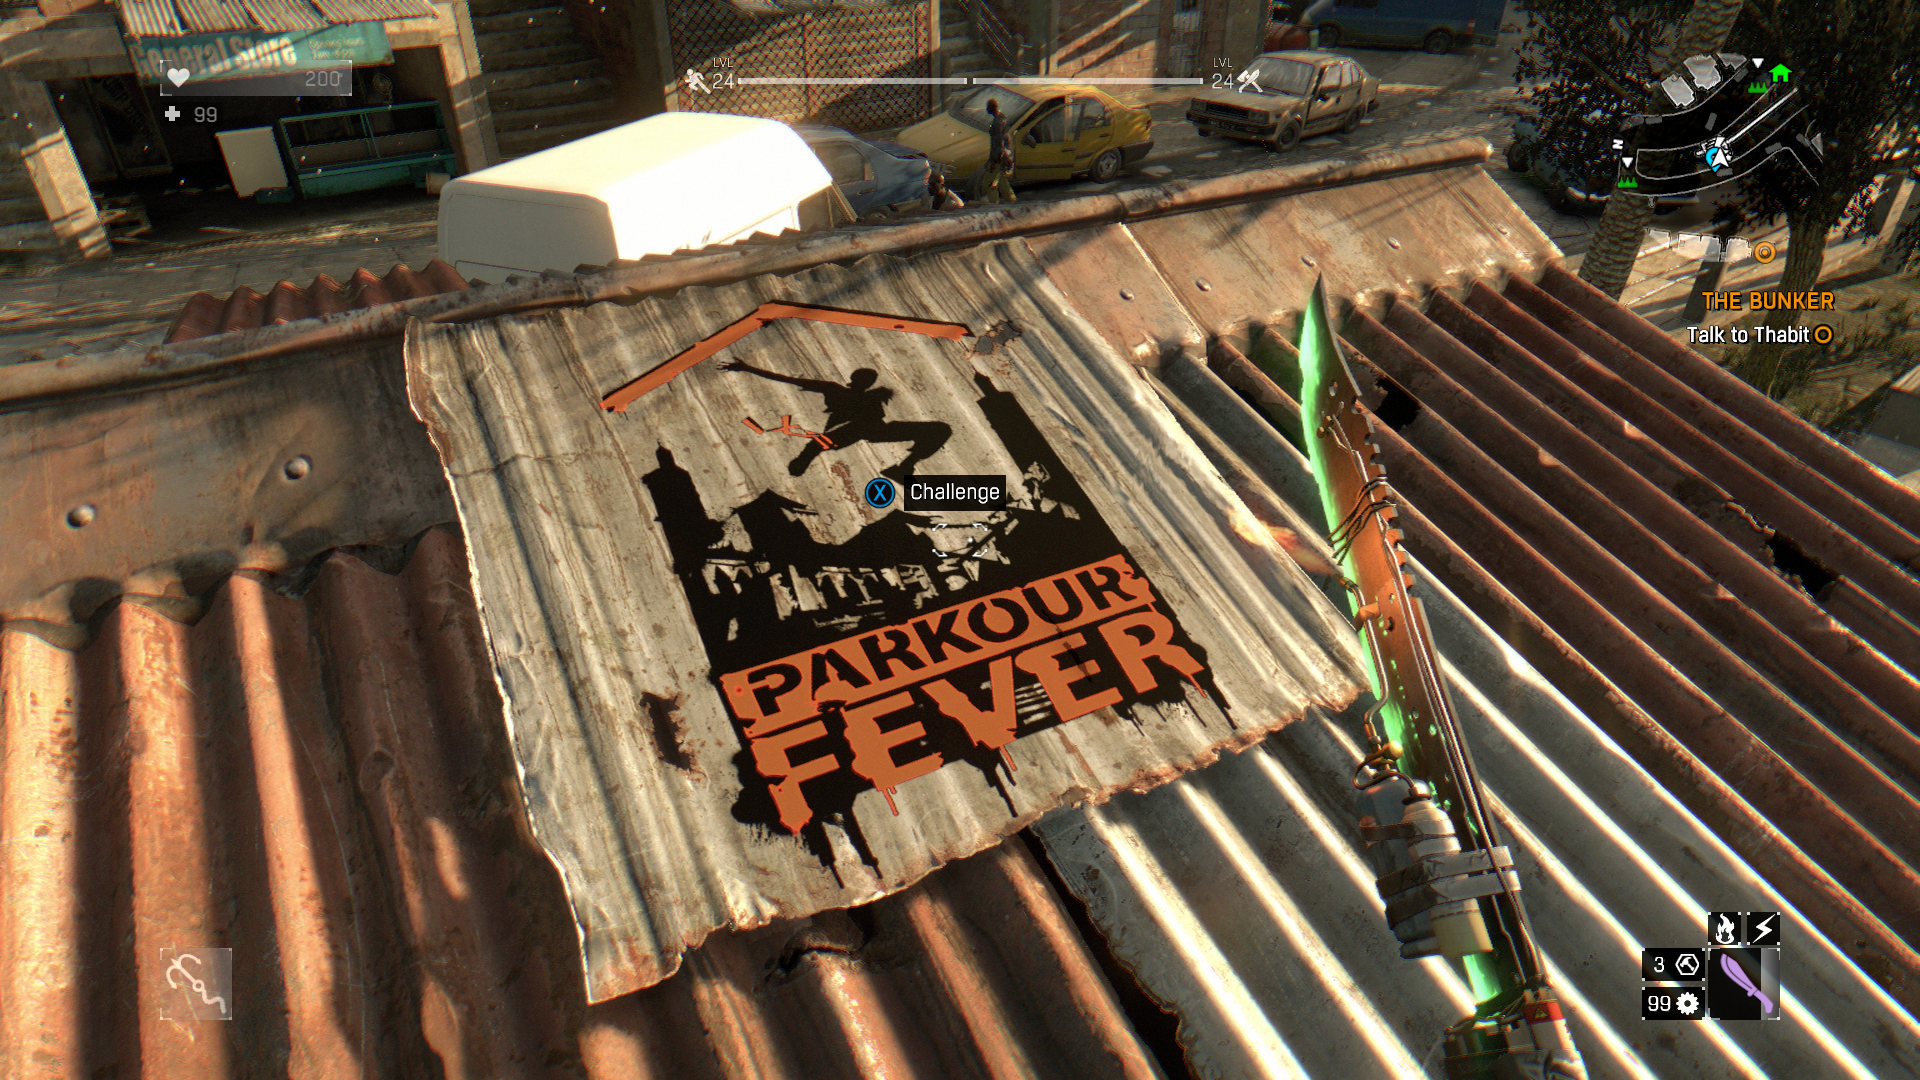 Dying Light Gets Patch 1 06 On PS4 And Xbox One, Adds Free DLC